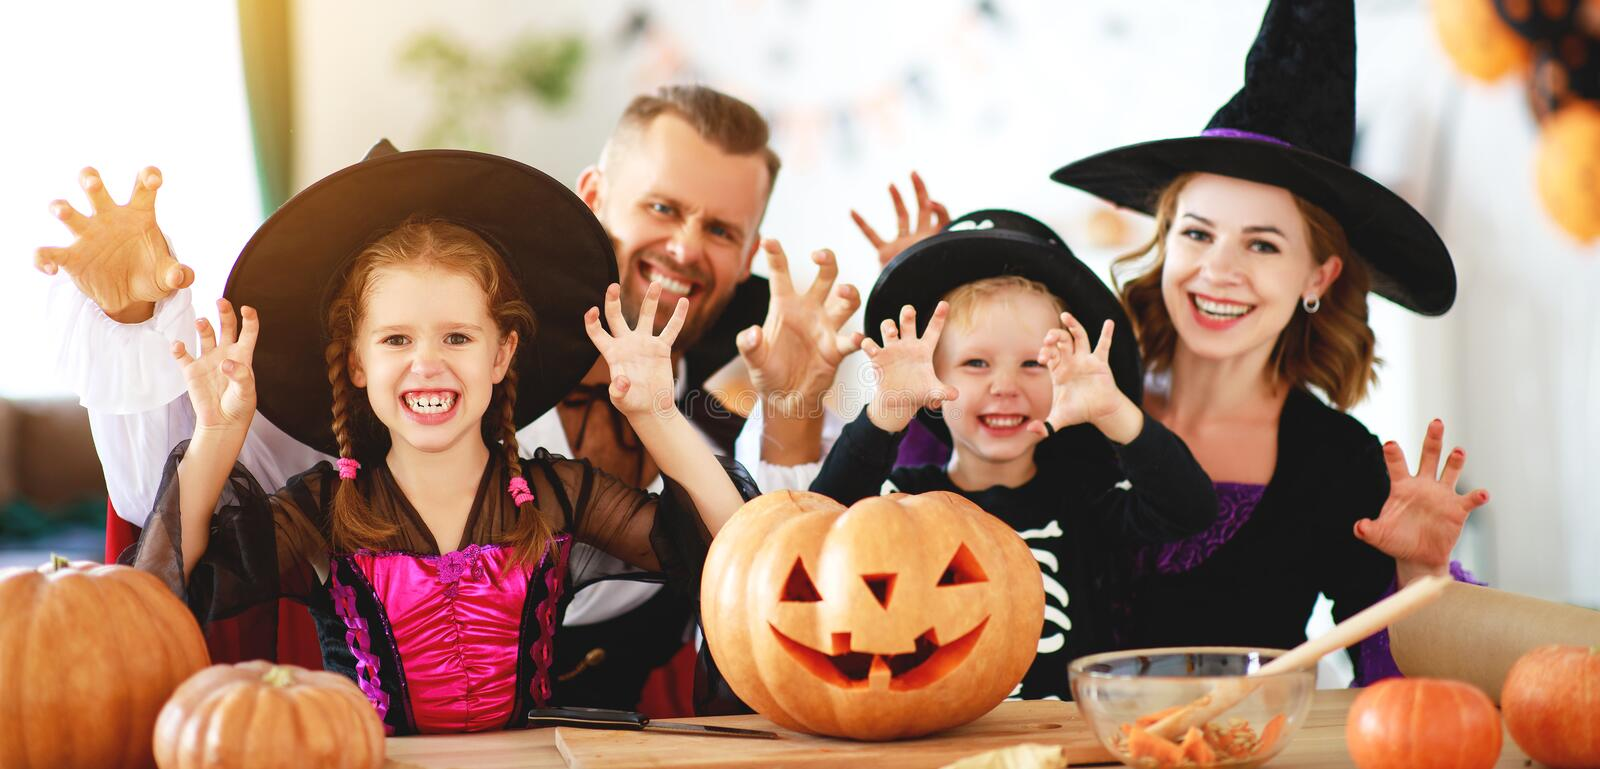 Happy family mother father and children in costumes   on  Halloween. Happy family mother father and children in costumes   on a celebration of Halloween royalty free stock photography